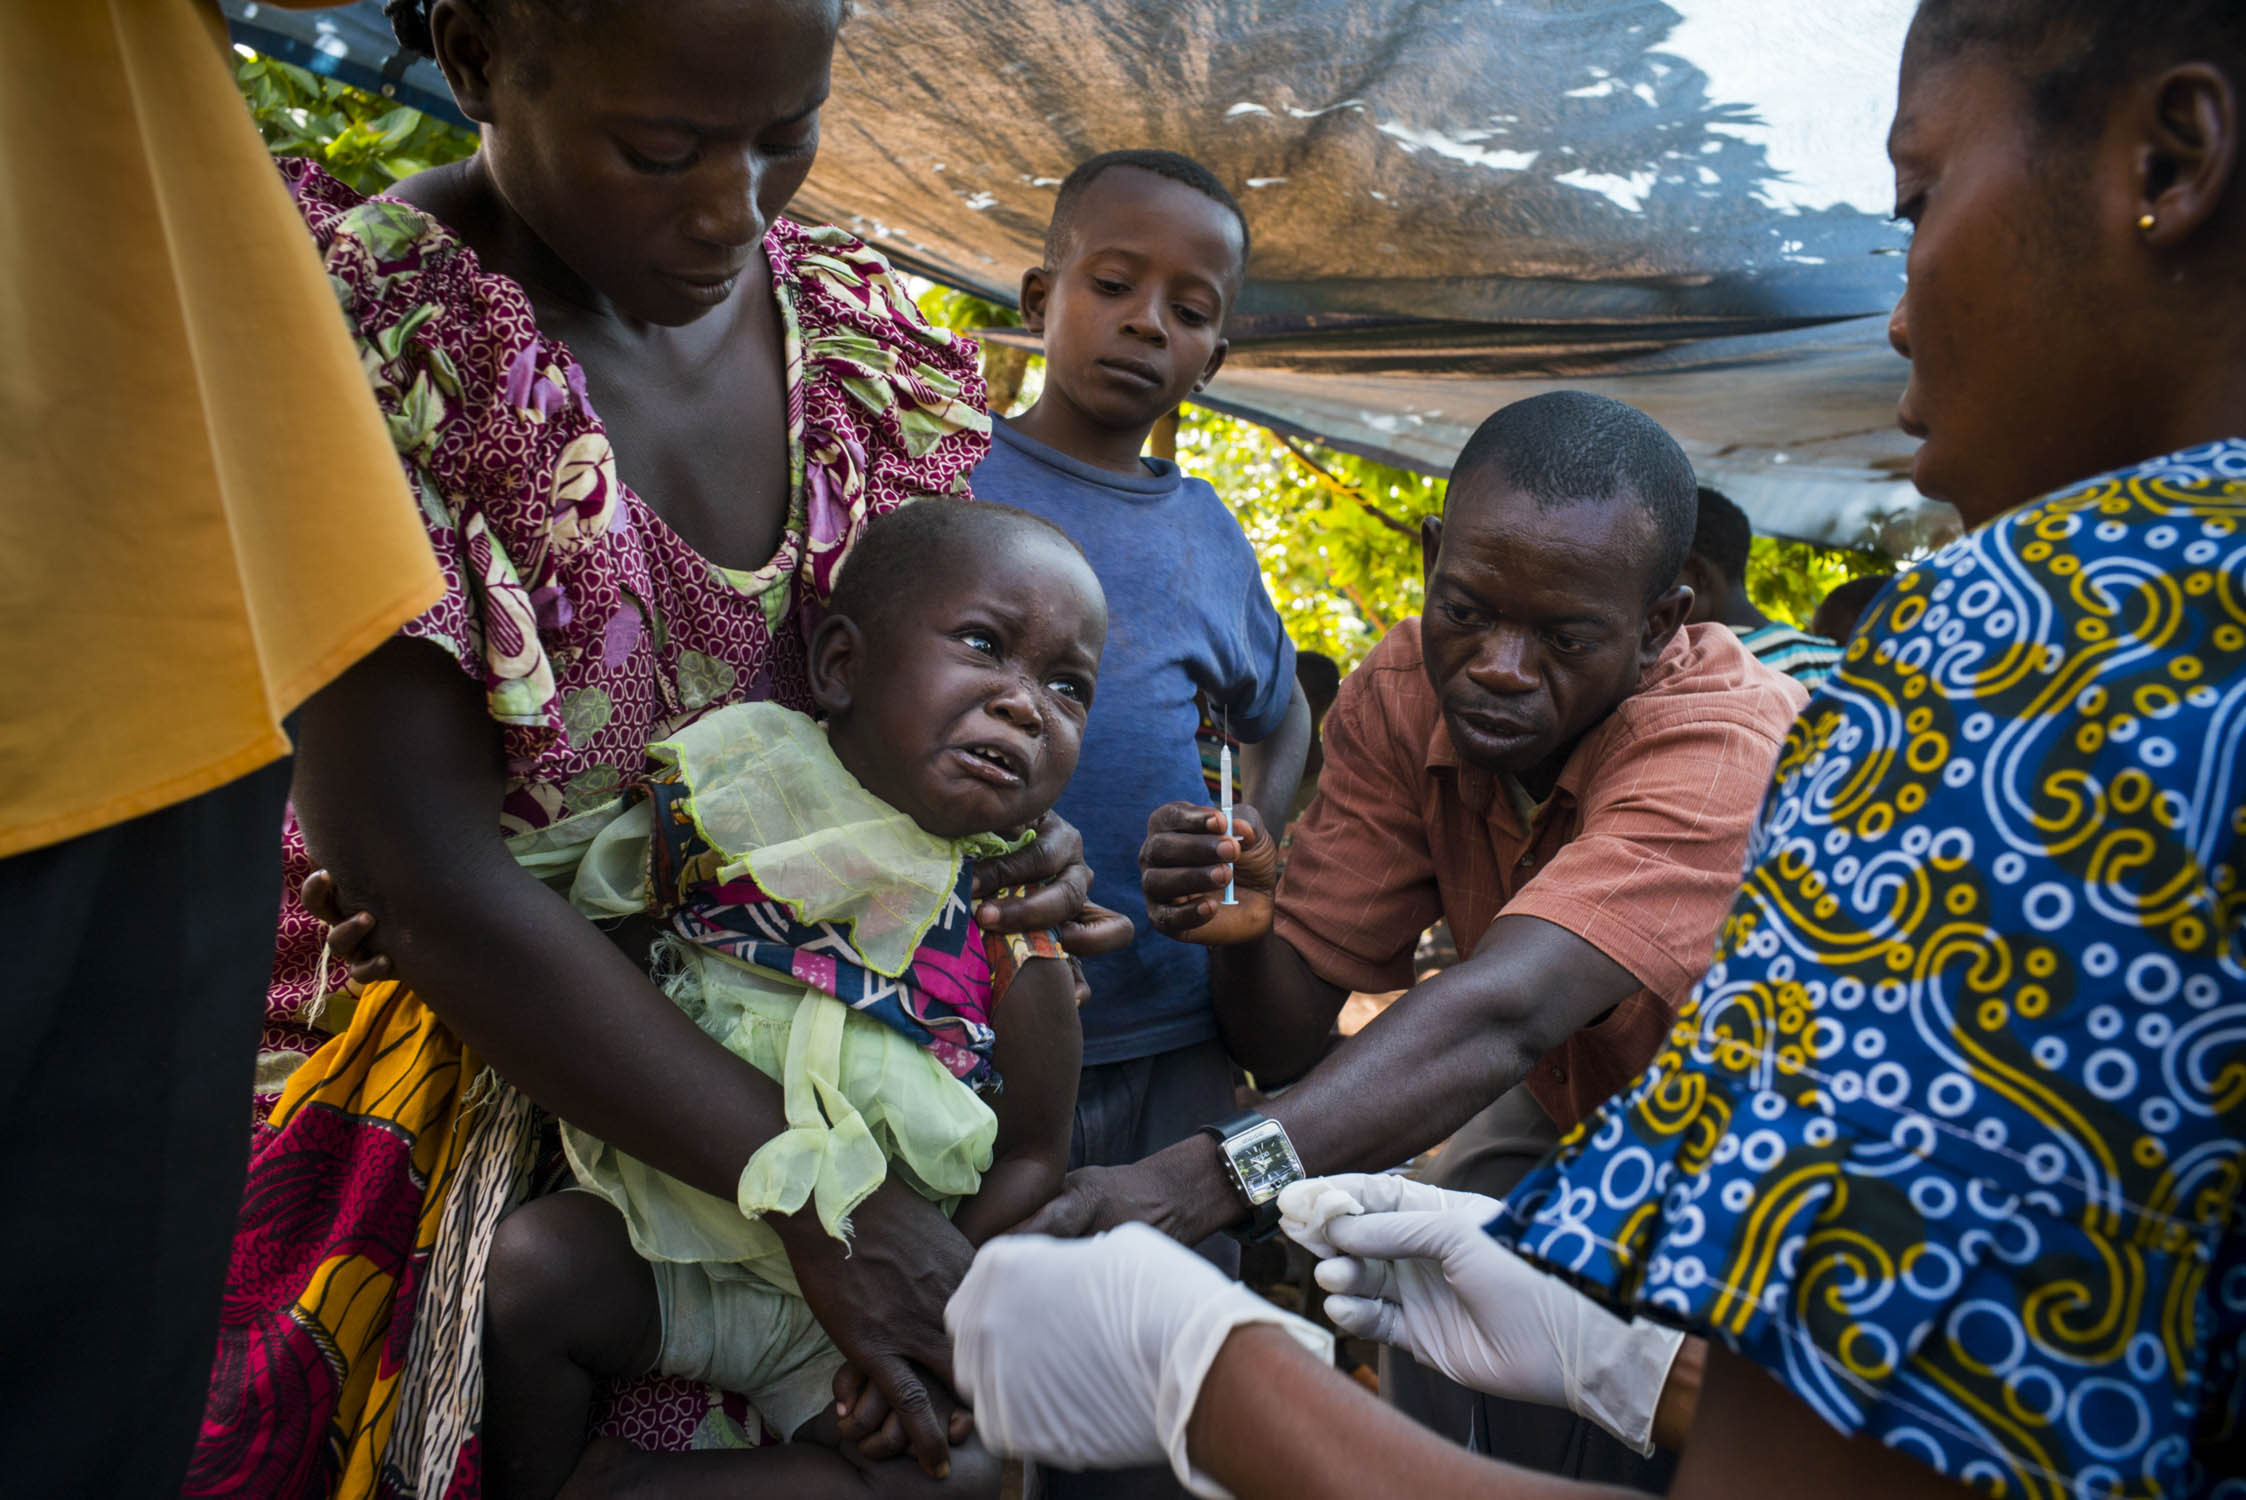 A child is vaccinated during a five-day measles vaccination campaign run by MSF in a remote region of northern Democratic Republic of the Congo (DRC). MSF named measles among the top five epidemics that could erupt or worsen in 2016. DRC has the fifth highest under-five mortality rate in the world. An estimated 465,000 children in DRC die each year of preventable diseases. Bas-Uele province, Democratic Republic of the Congo. June 1, 2016